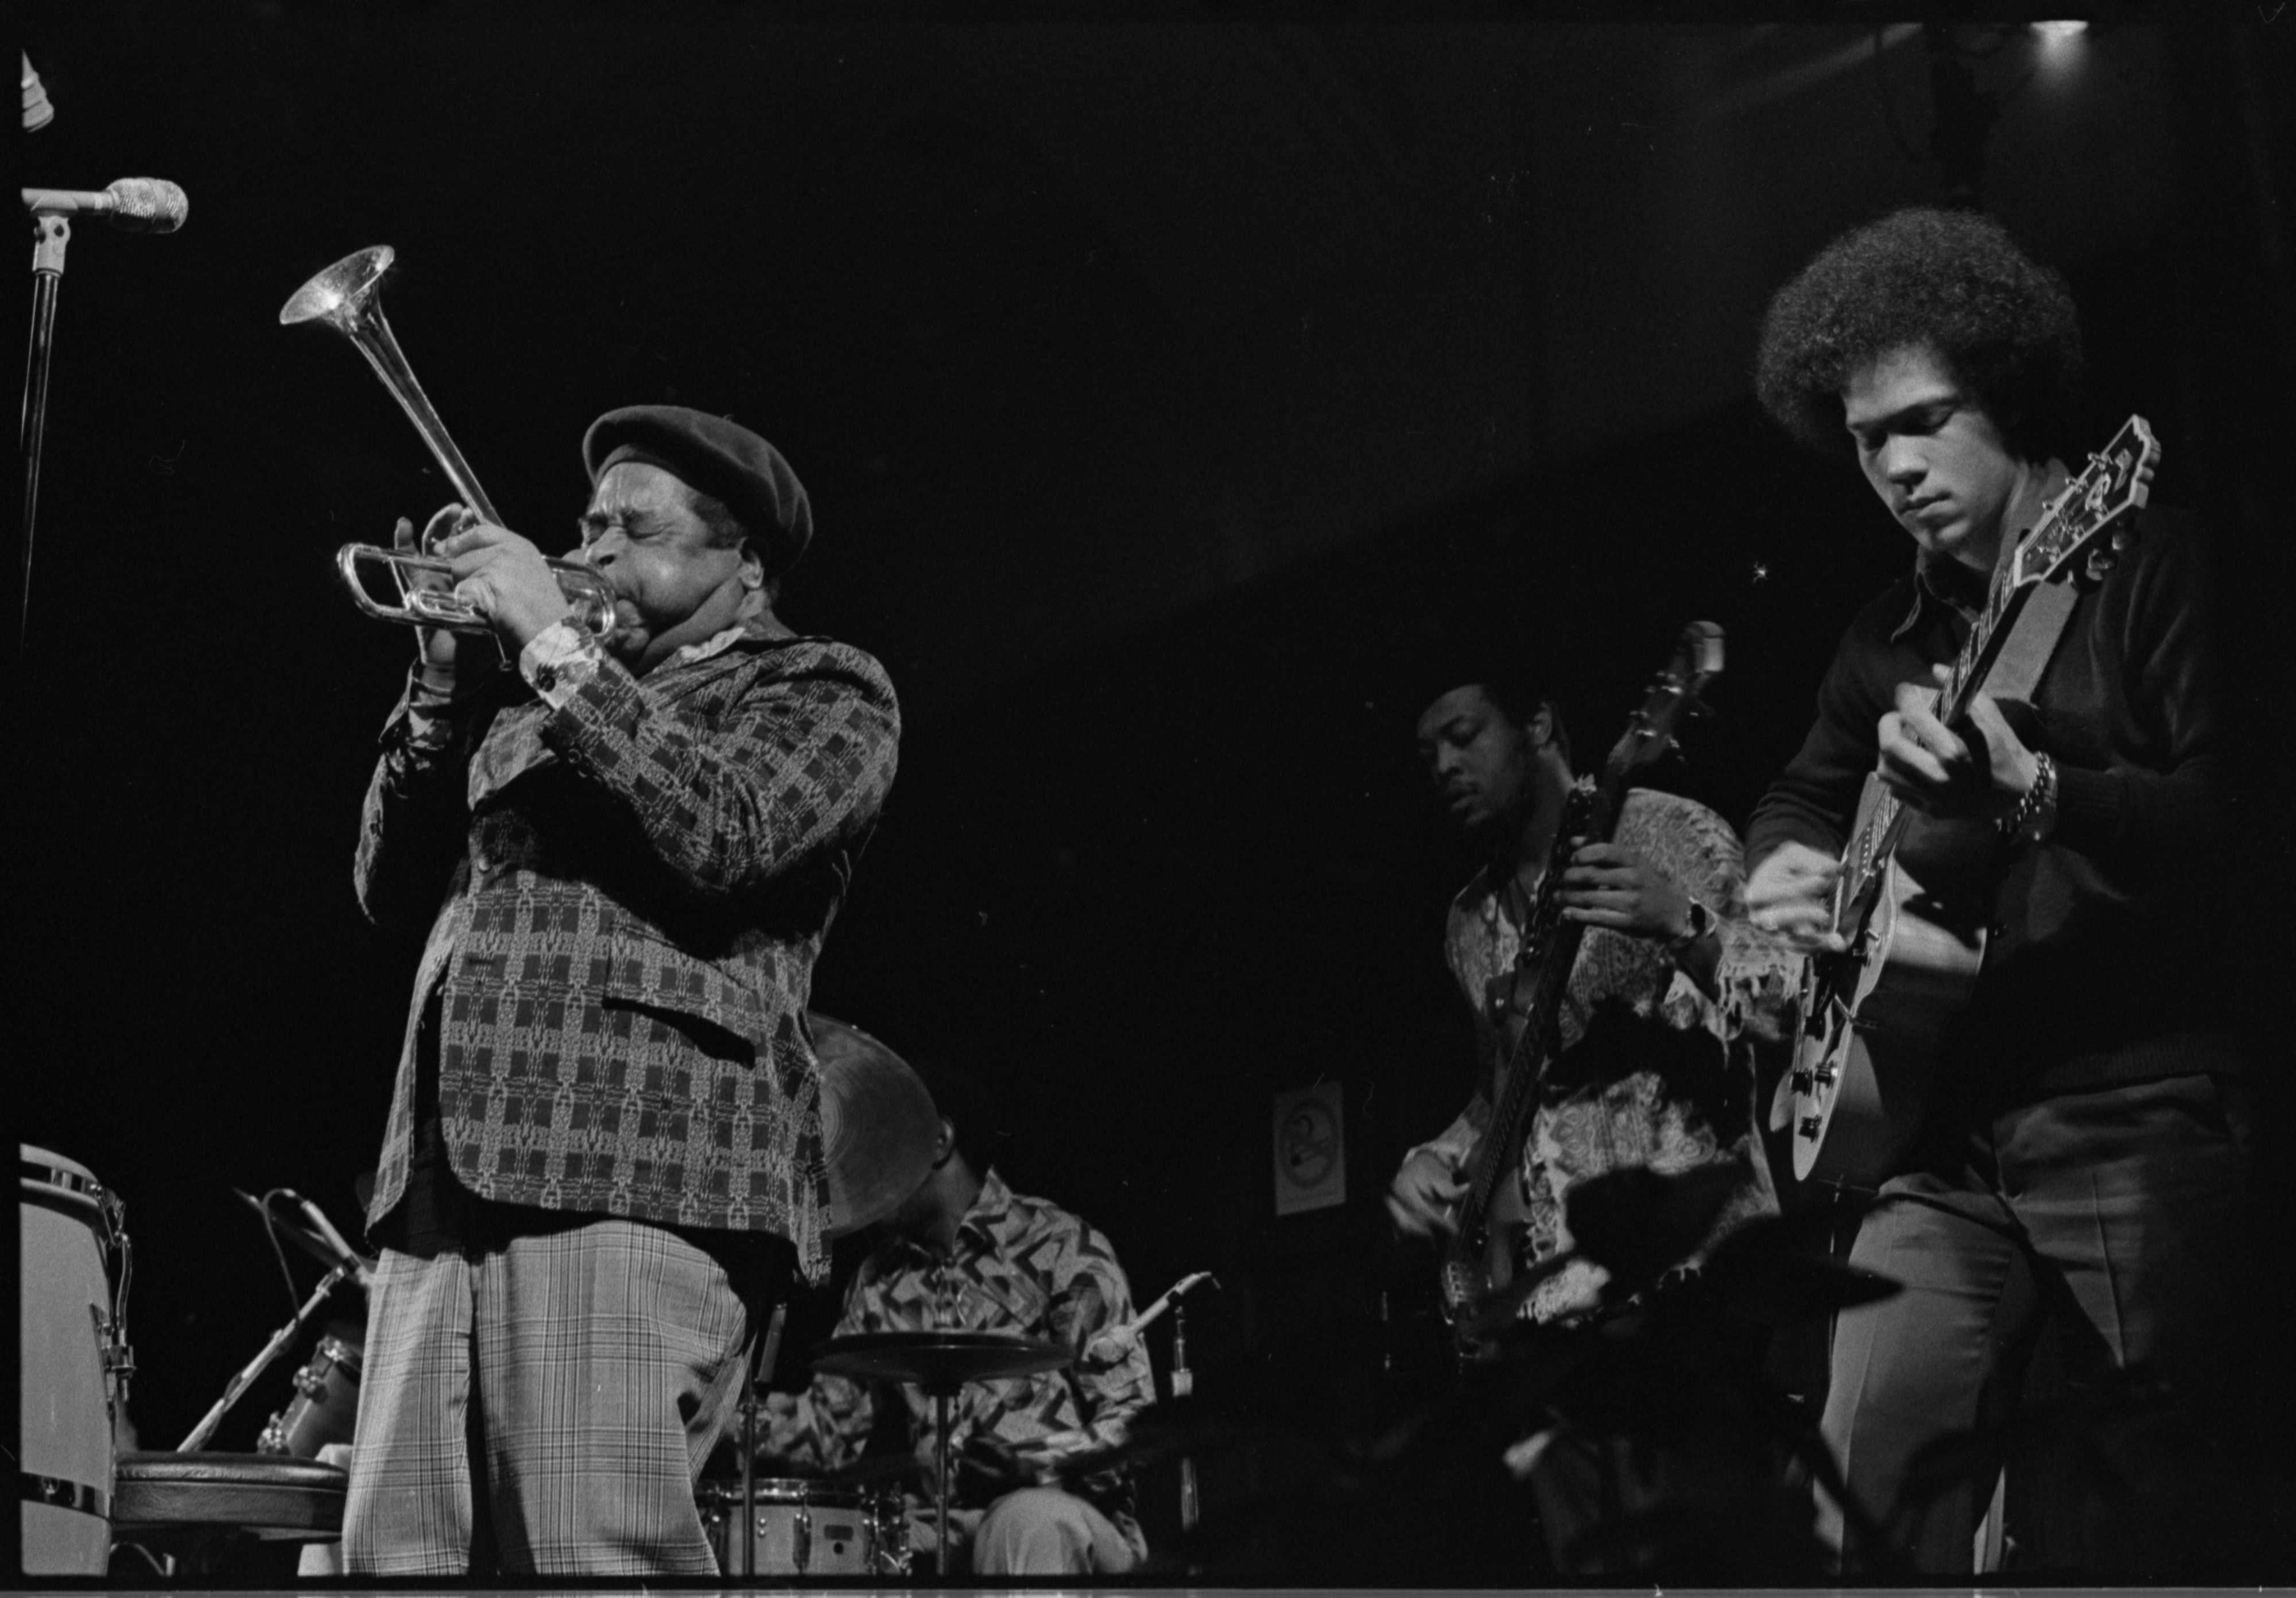 Dizzy Gillespie & His Quartet in Concert, Michigan League Ballroom, January 14, 1977 image